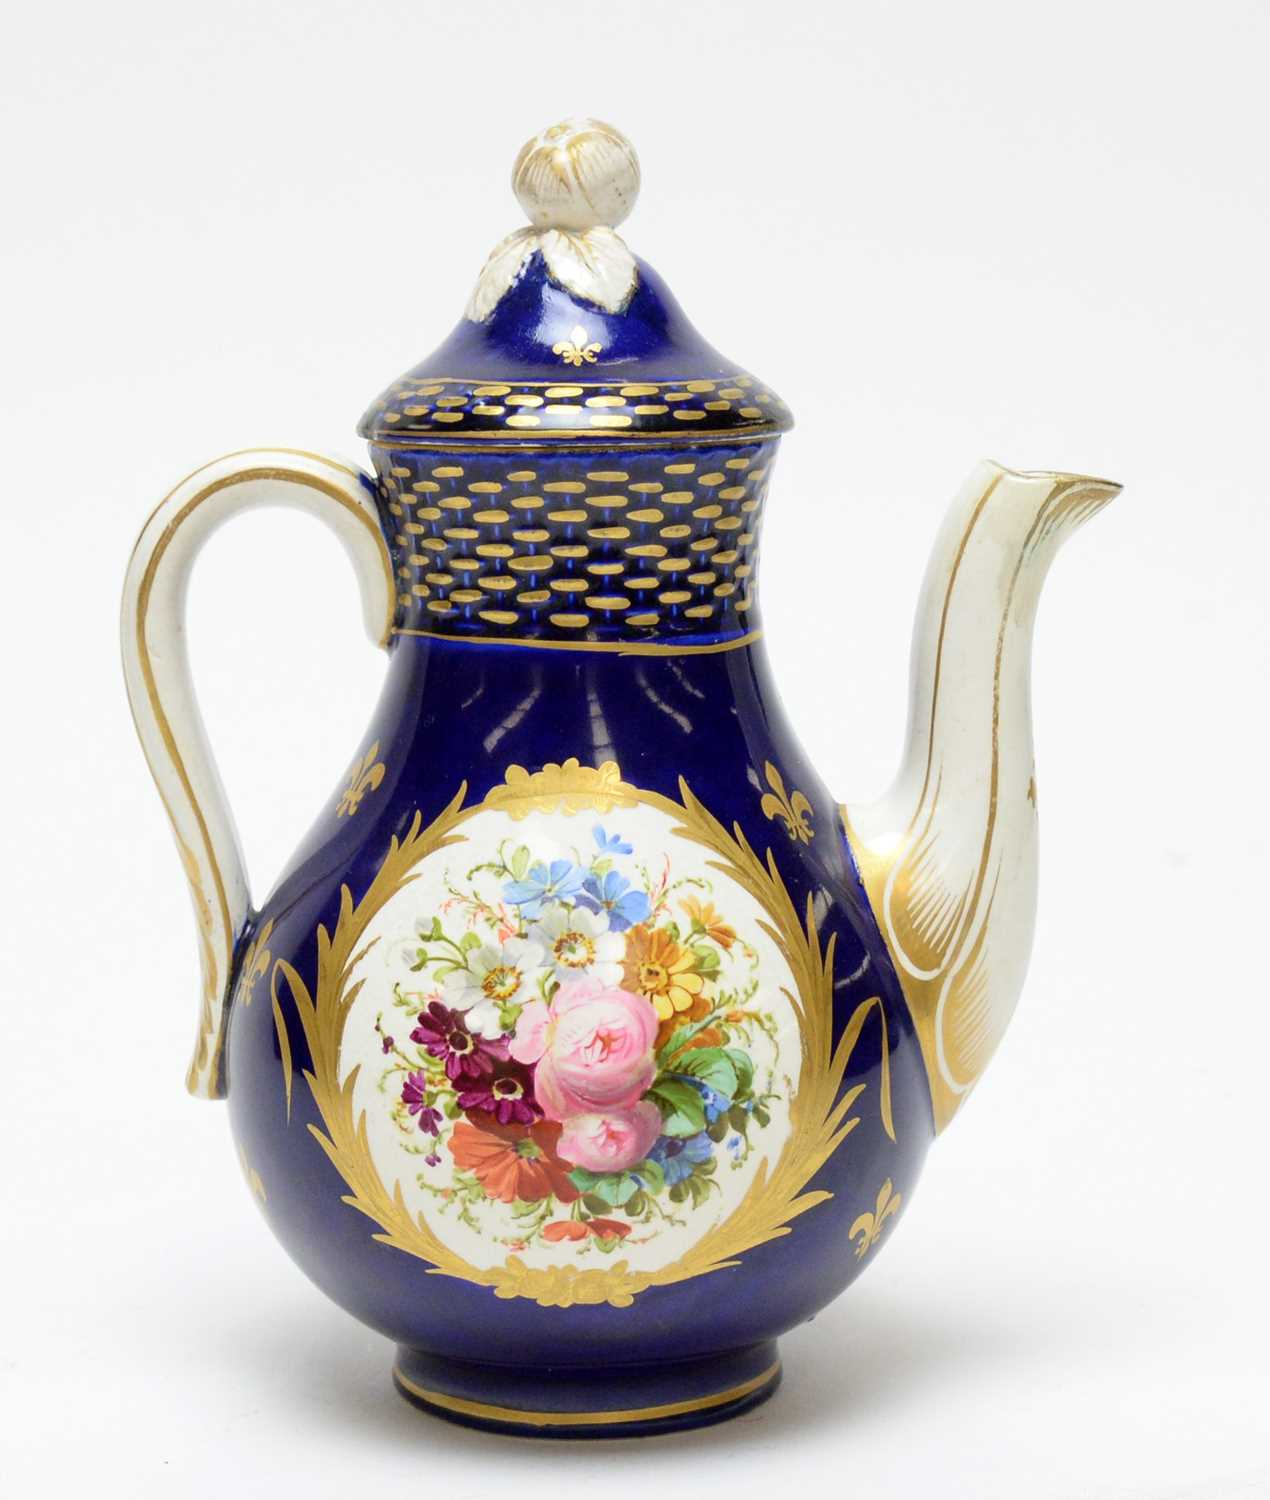 Sevres style coffee pot - Image 3 of 3